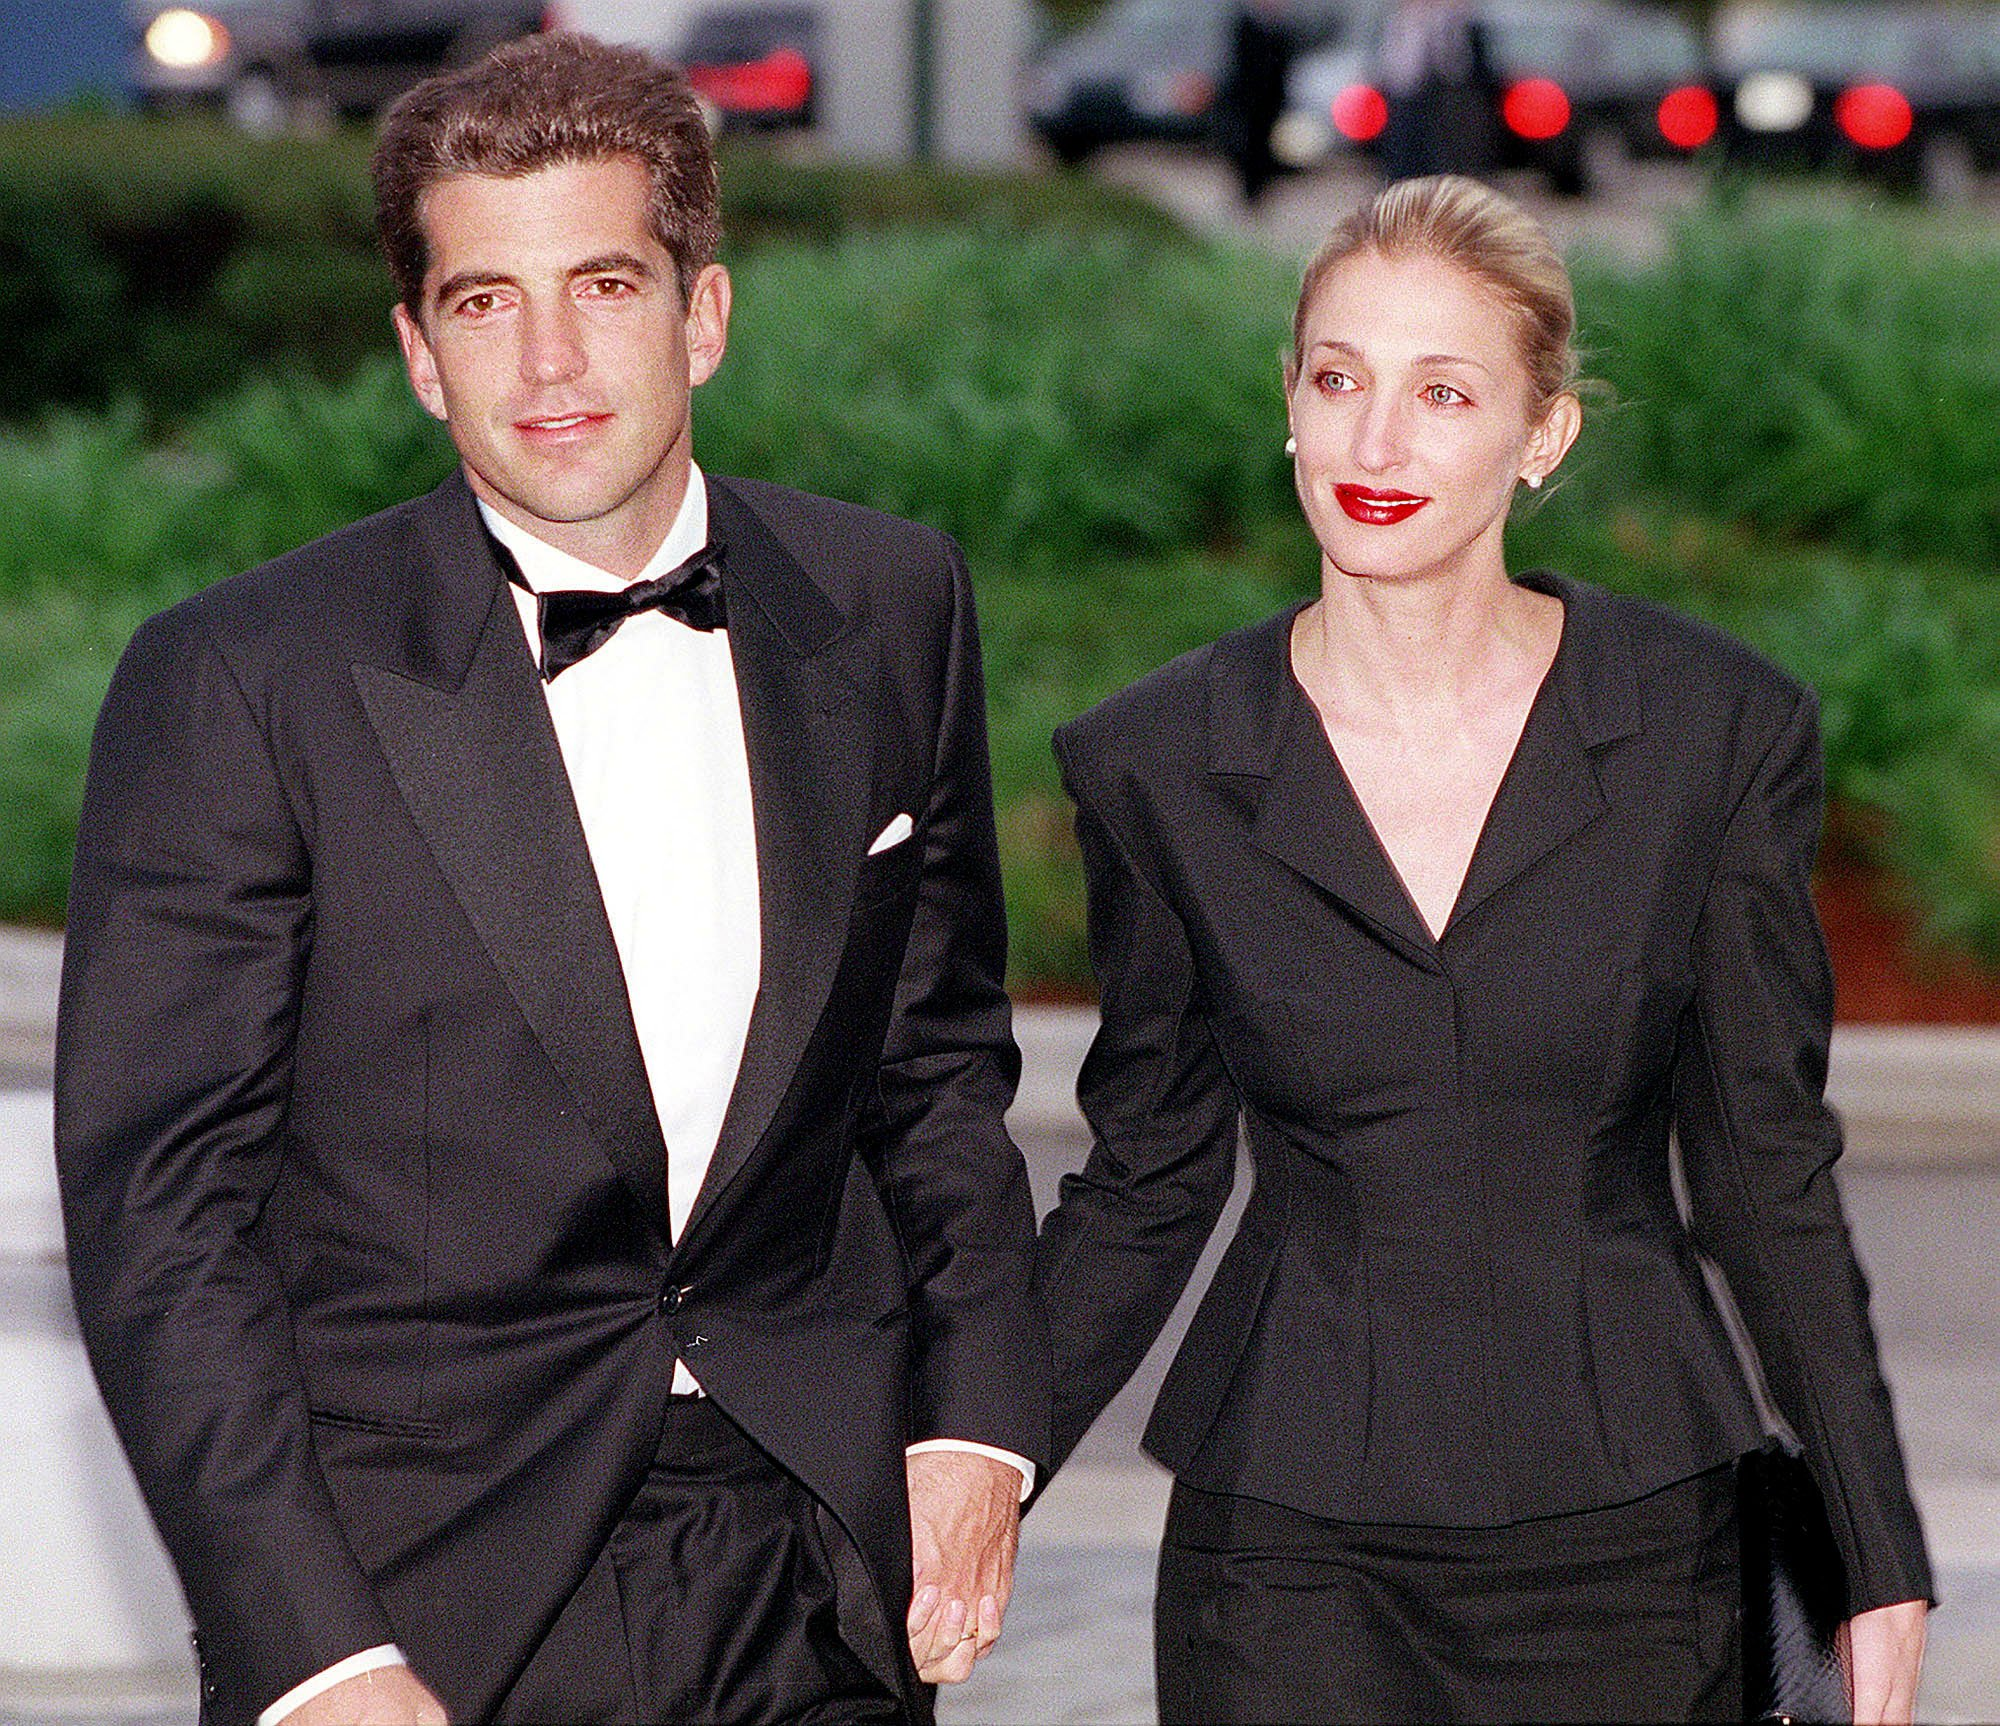 John F. Kennedy, Jr. and his wife Carolyn Bessette Kennedy arrive at the annual John F. Kennedy Library Foundation dinner and Profiles in Courage awards on May 23, 1999, in Boston, MA. | Source: Getty Images.